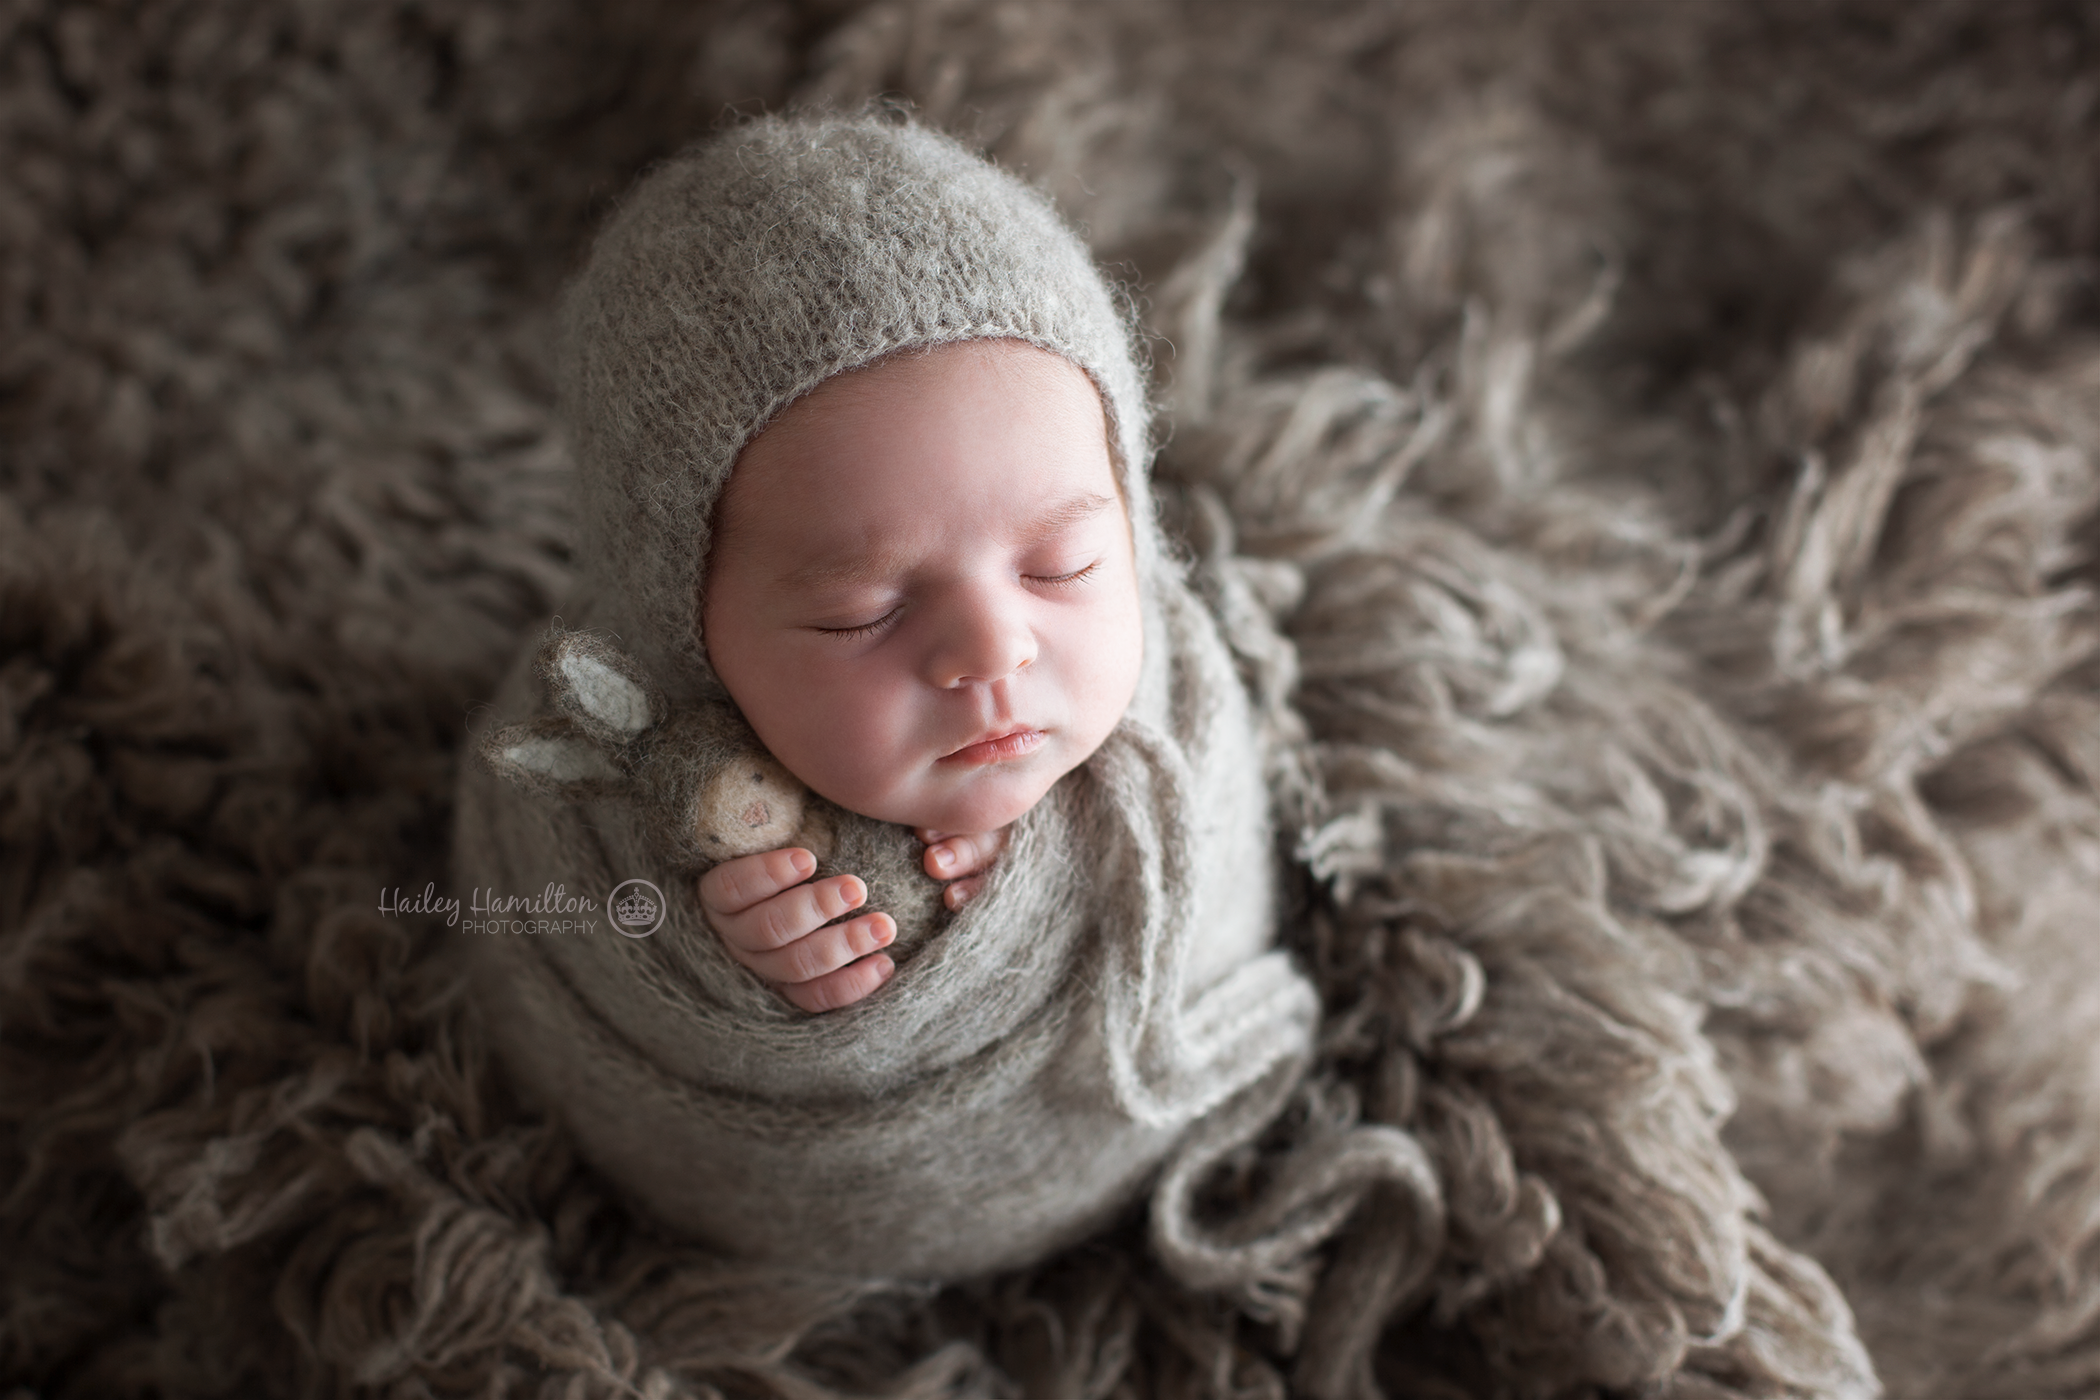 Hailey-Hamilton-Photography-newborn-mentoring-posing-workshop.png